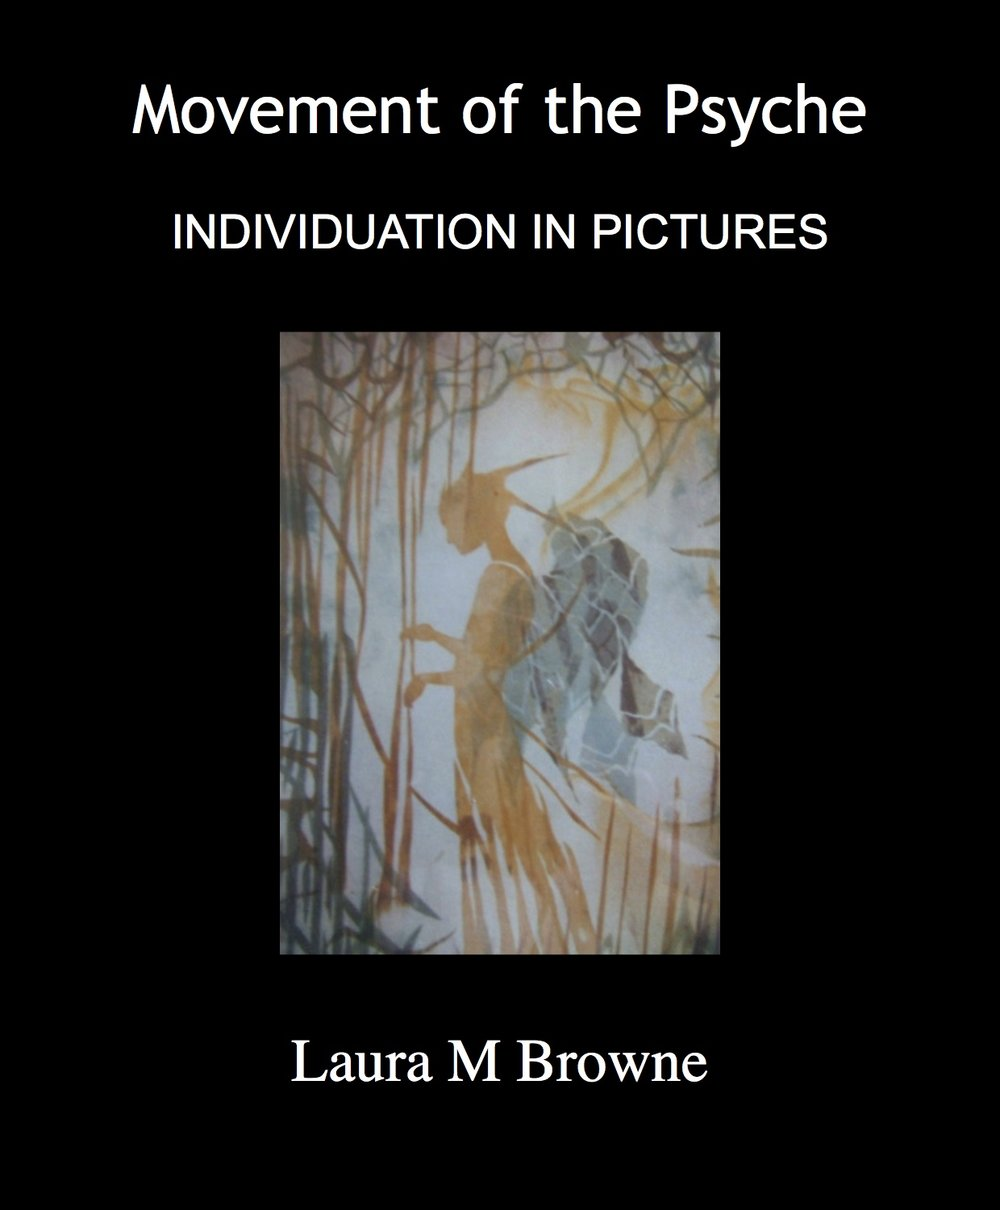 Movement of the Psyche.jpg